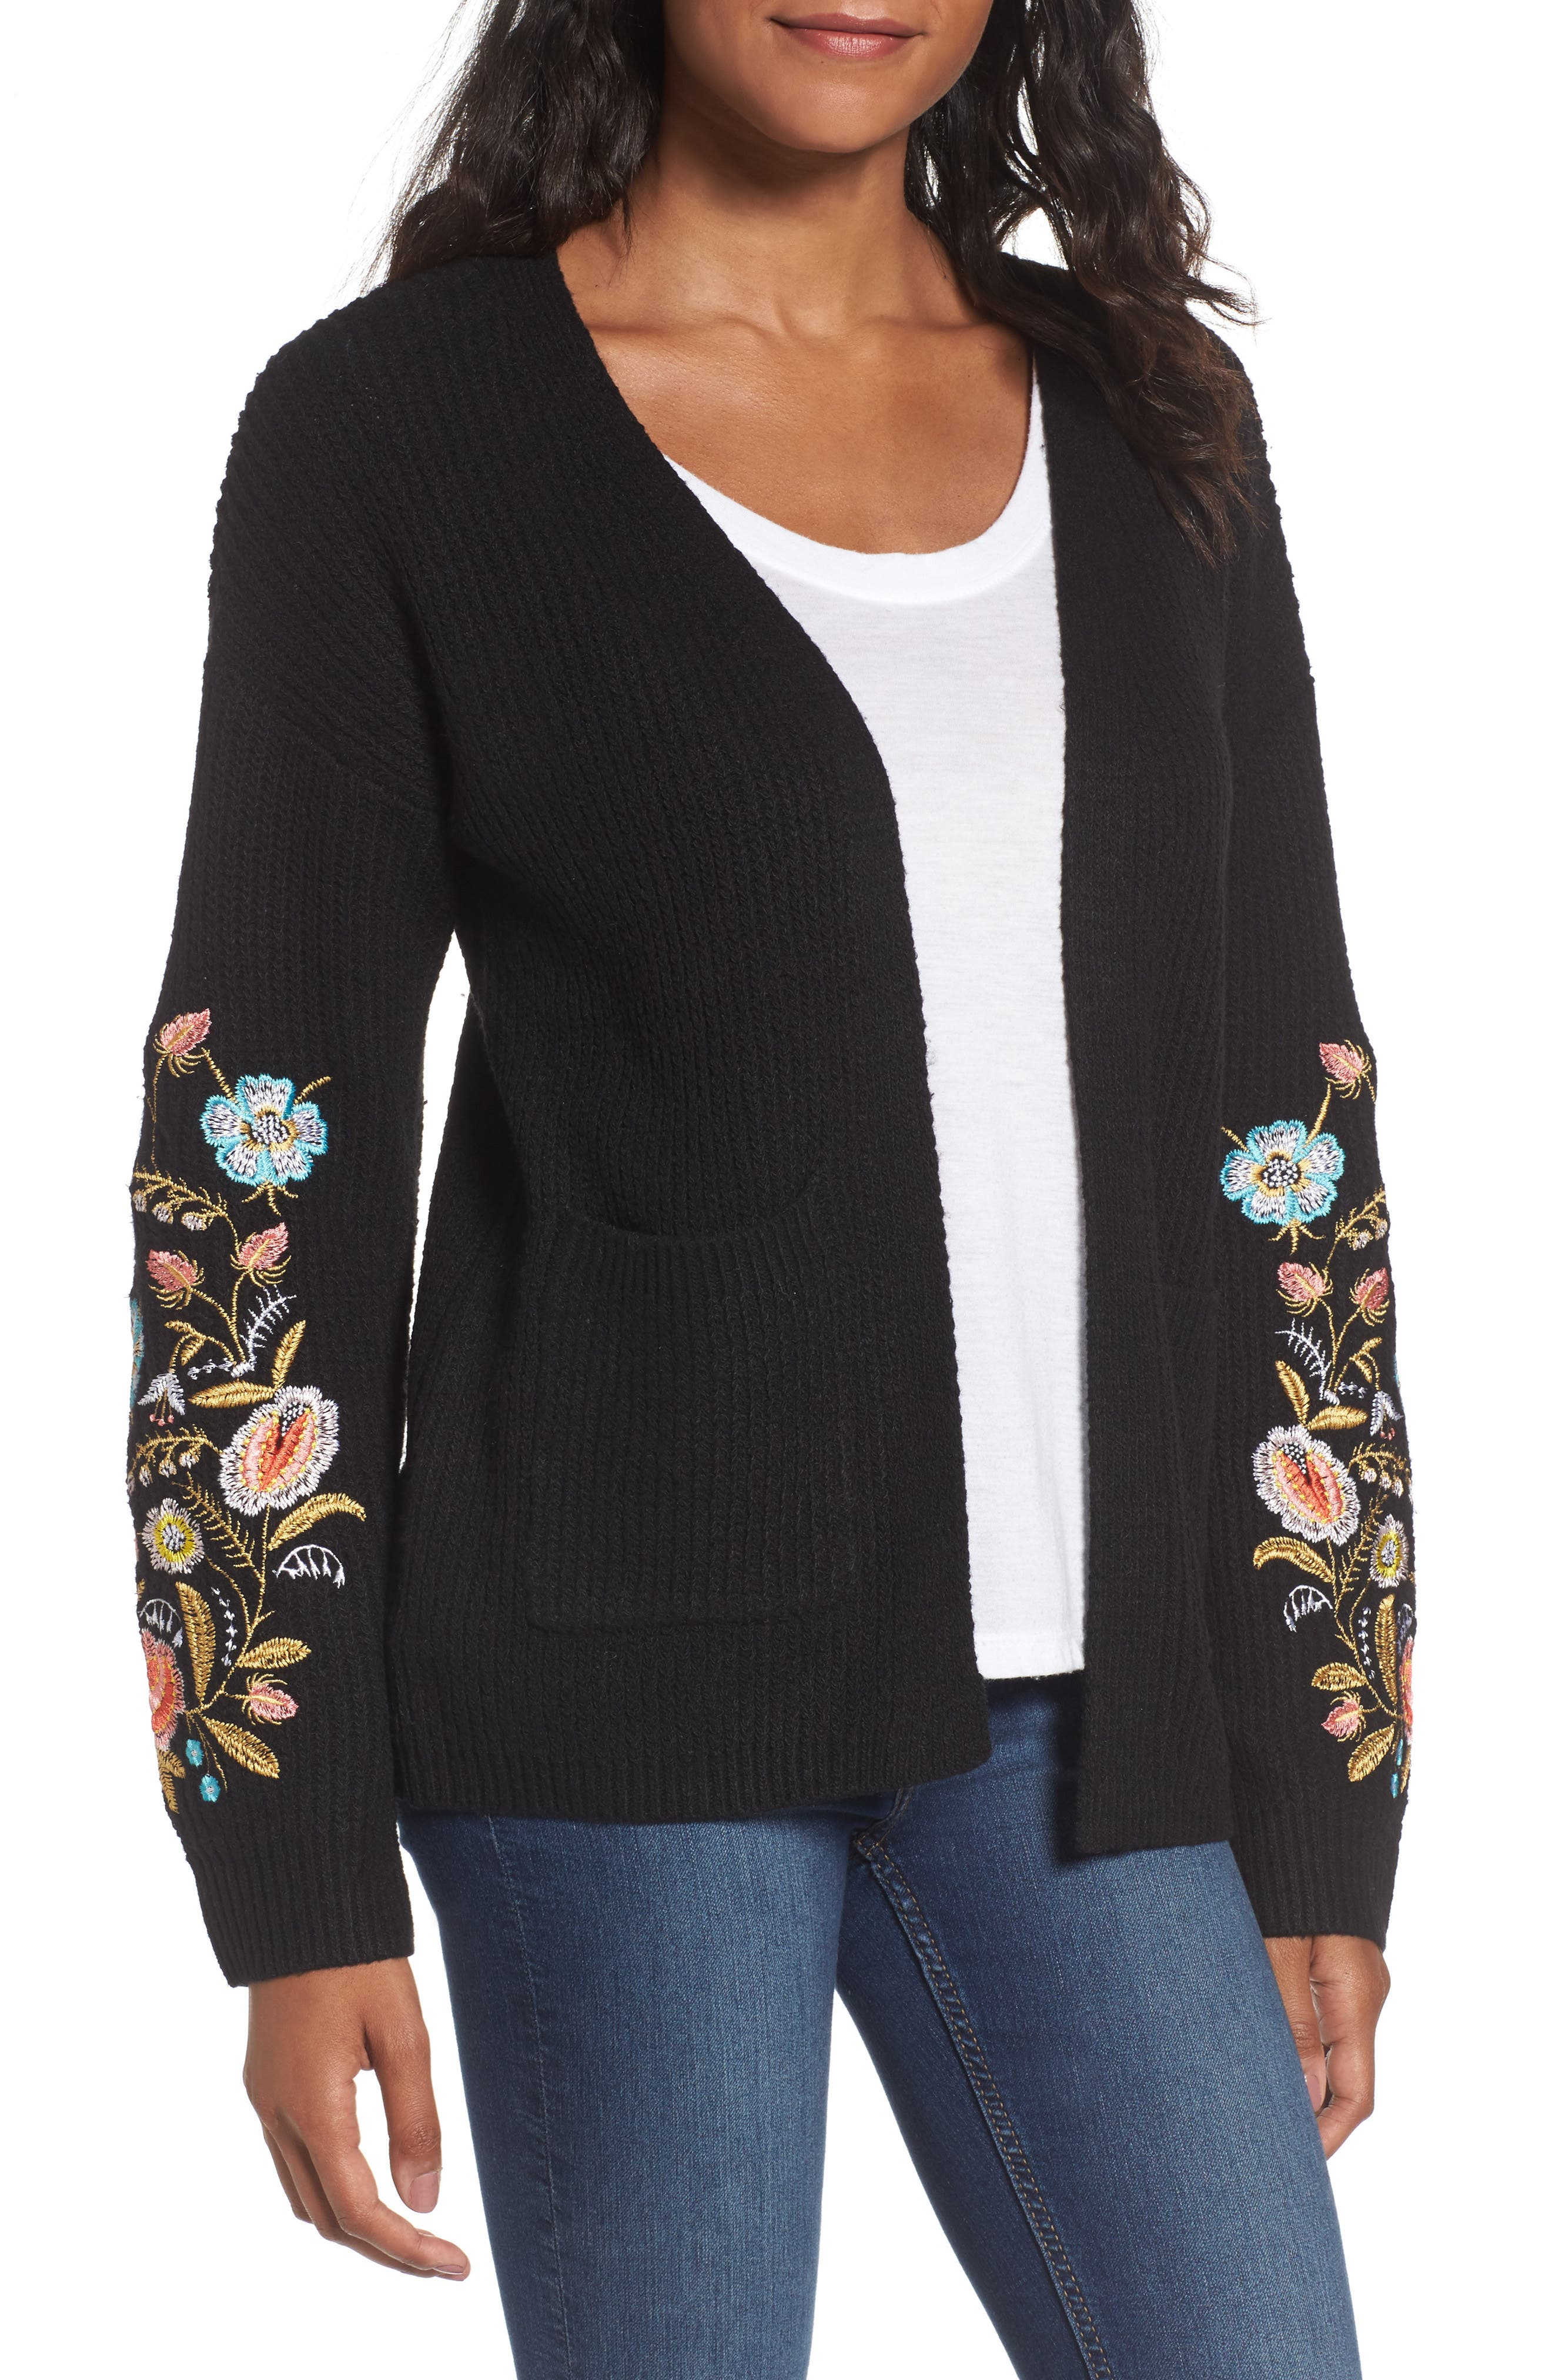 Alternate Image 1 Selected - Woven Heart Embroidered Cardigan